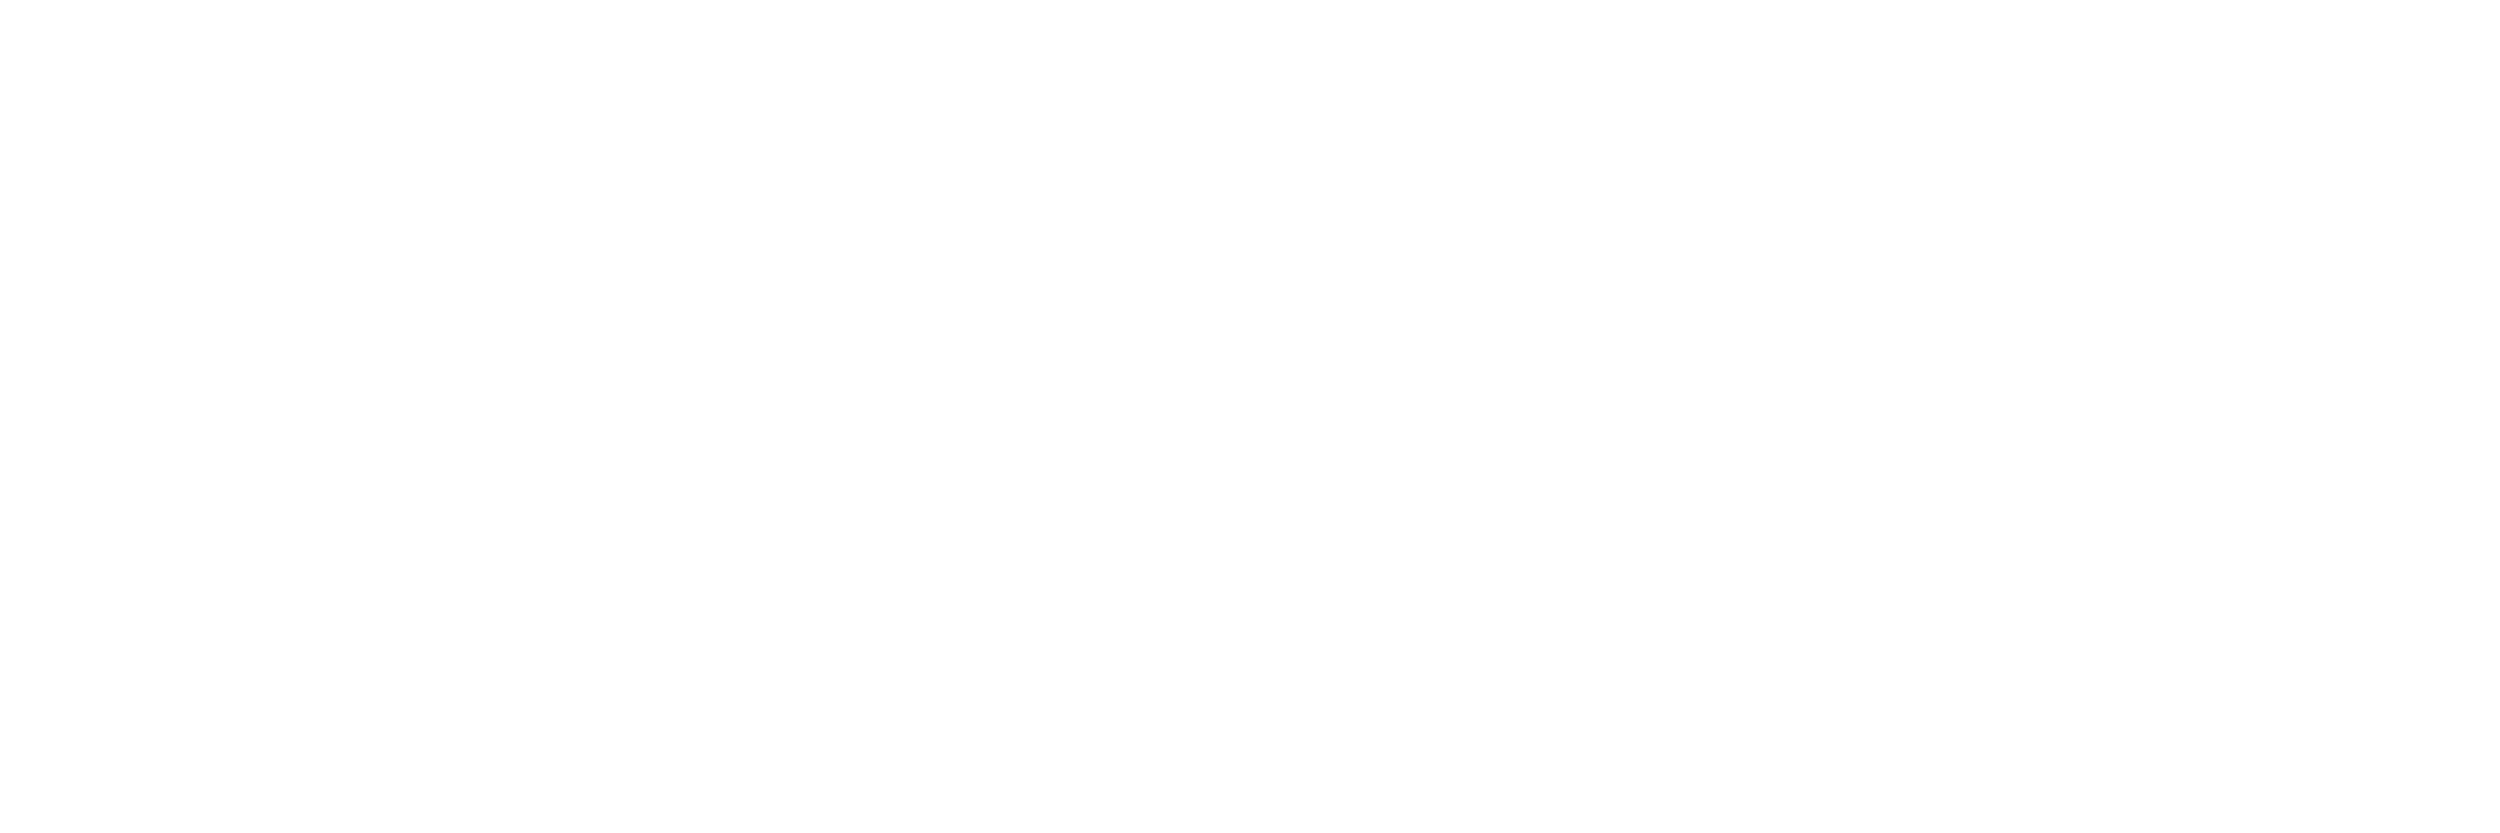 MWM 3x1 Logo - White on Trans copy.png